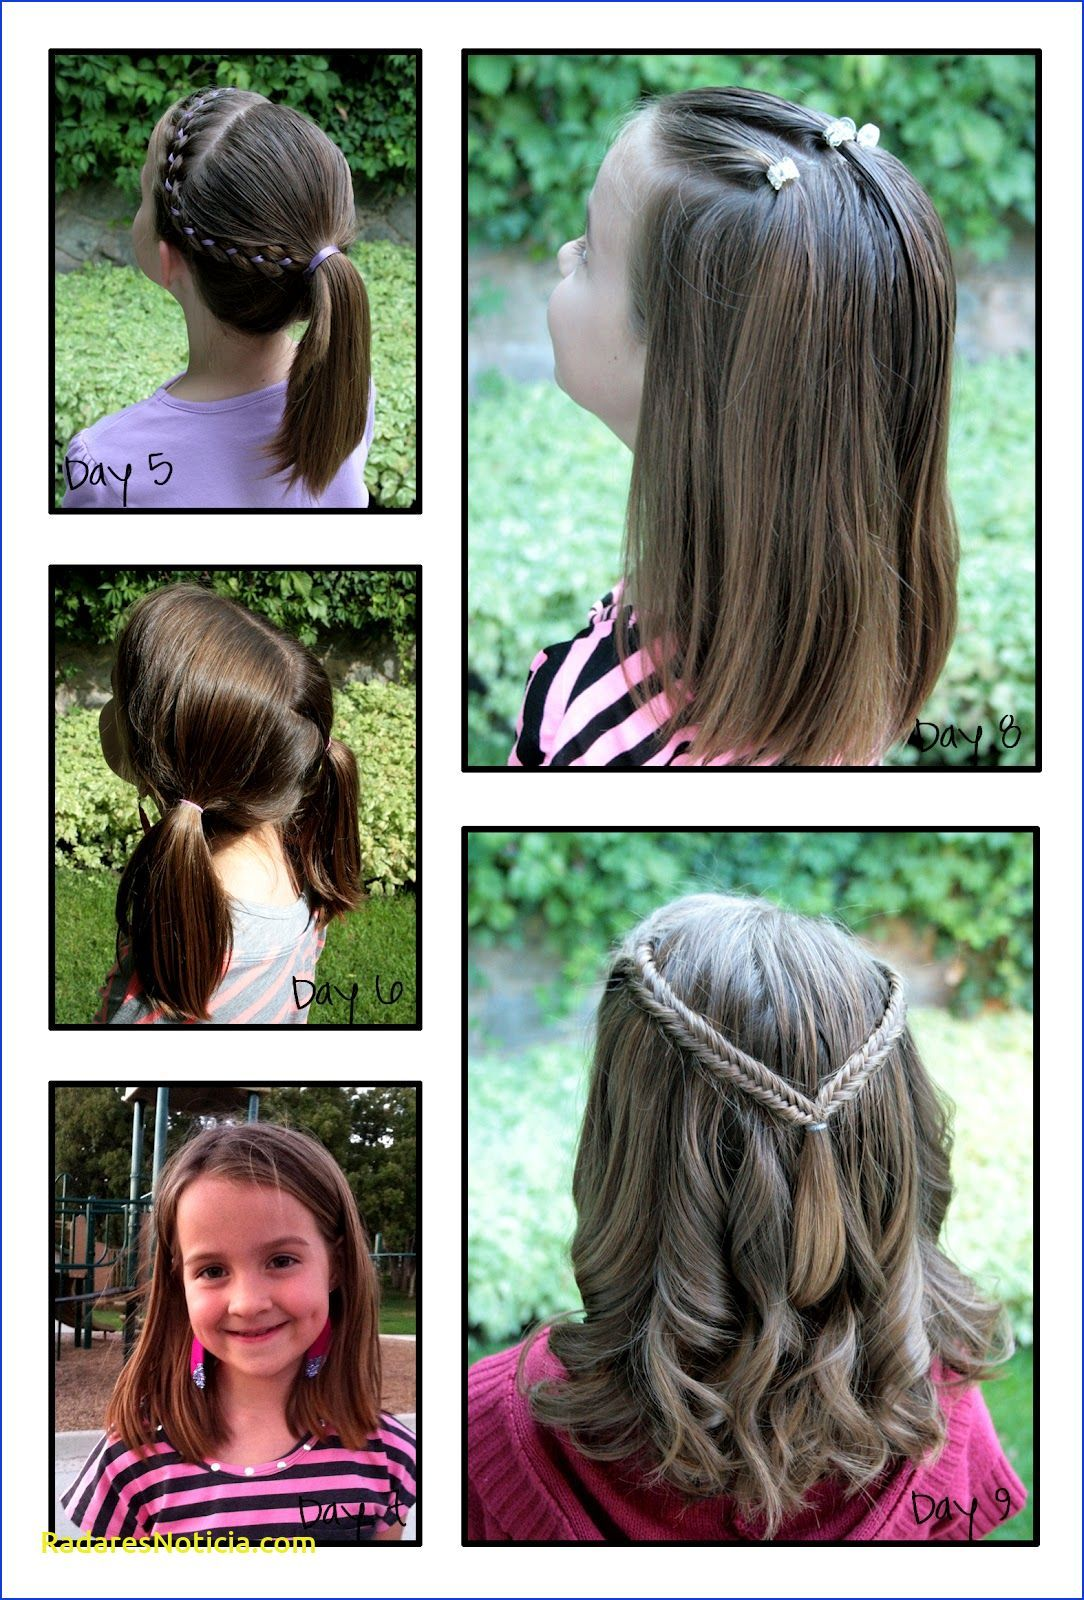 Pictures On 10 Year Old Hairstyles For School Short Min Hairstyles For Hairstyles For Year Olds Girl Hairstyles Old Hairstyles Girl Haircuts